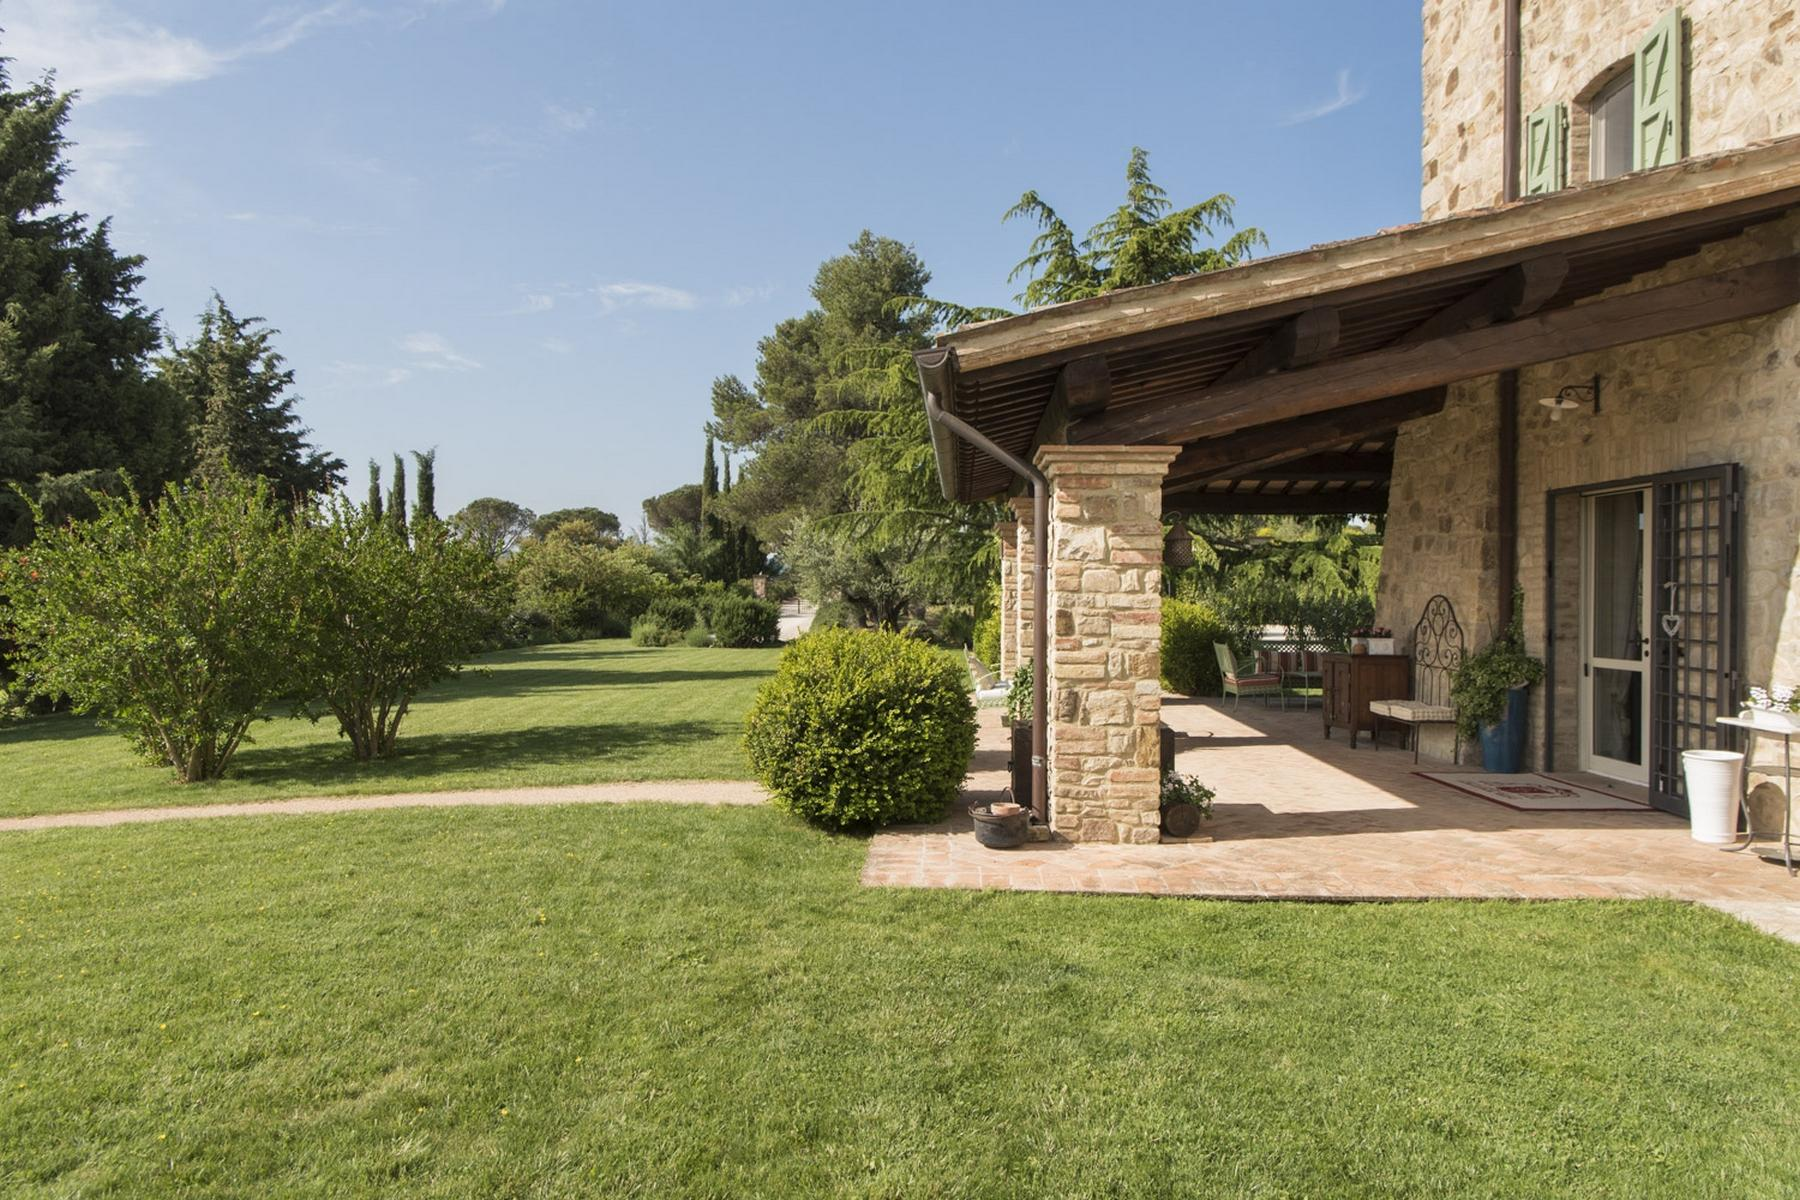 Marvellous property in the heart of Umbria Region - 15